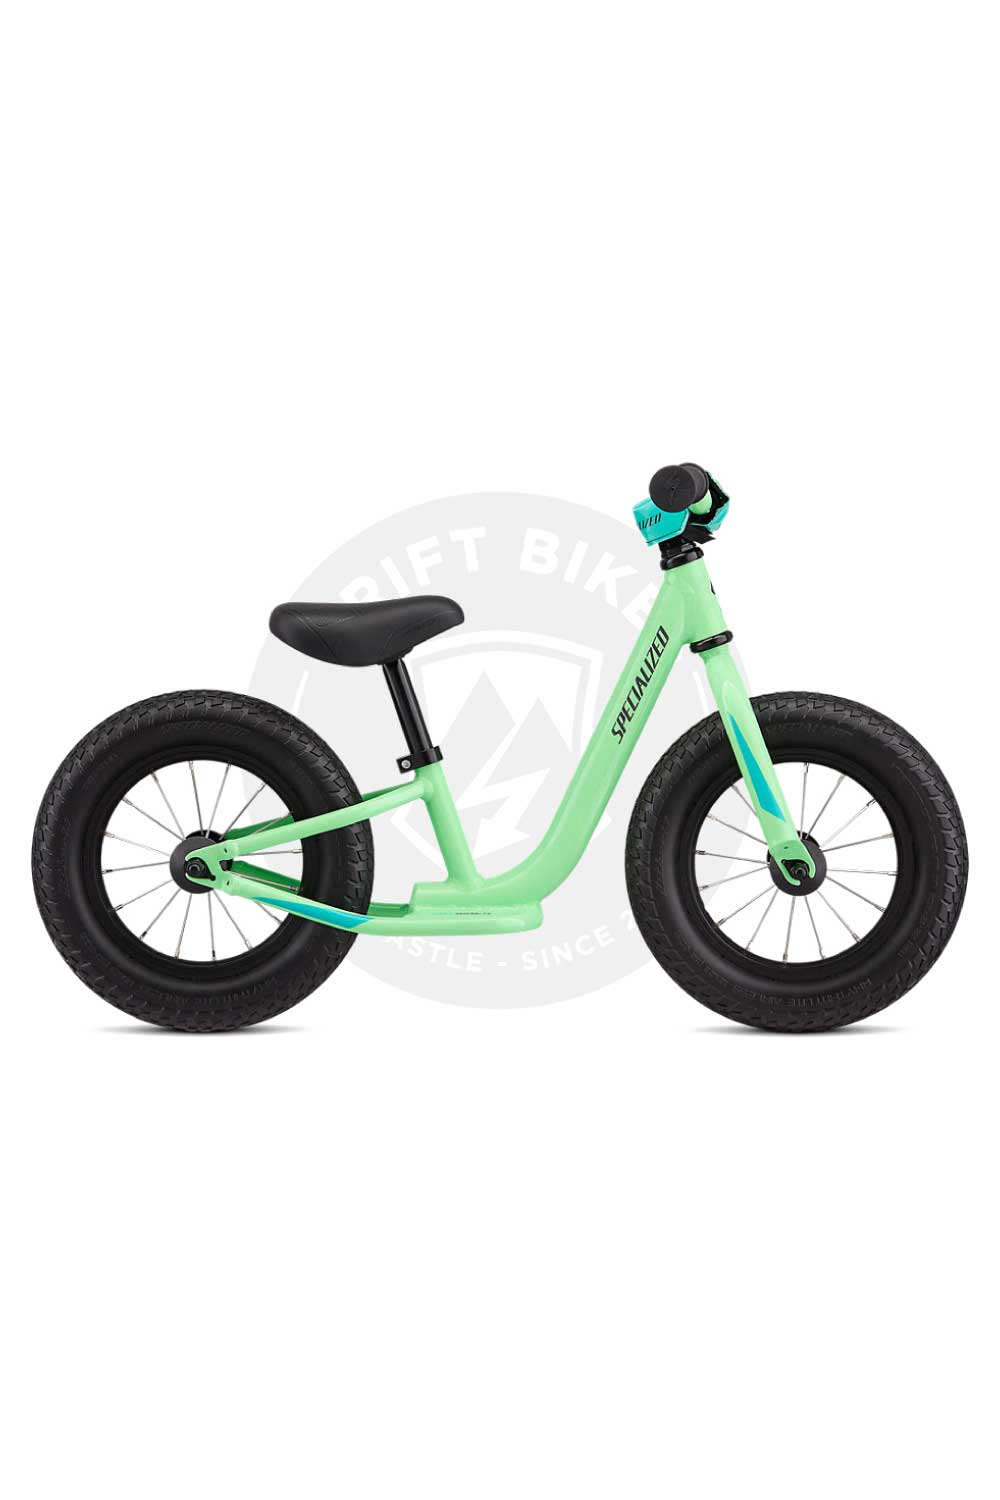 Specialized 2021 Hotwalk Kids Bike